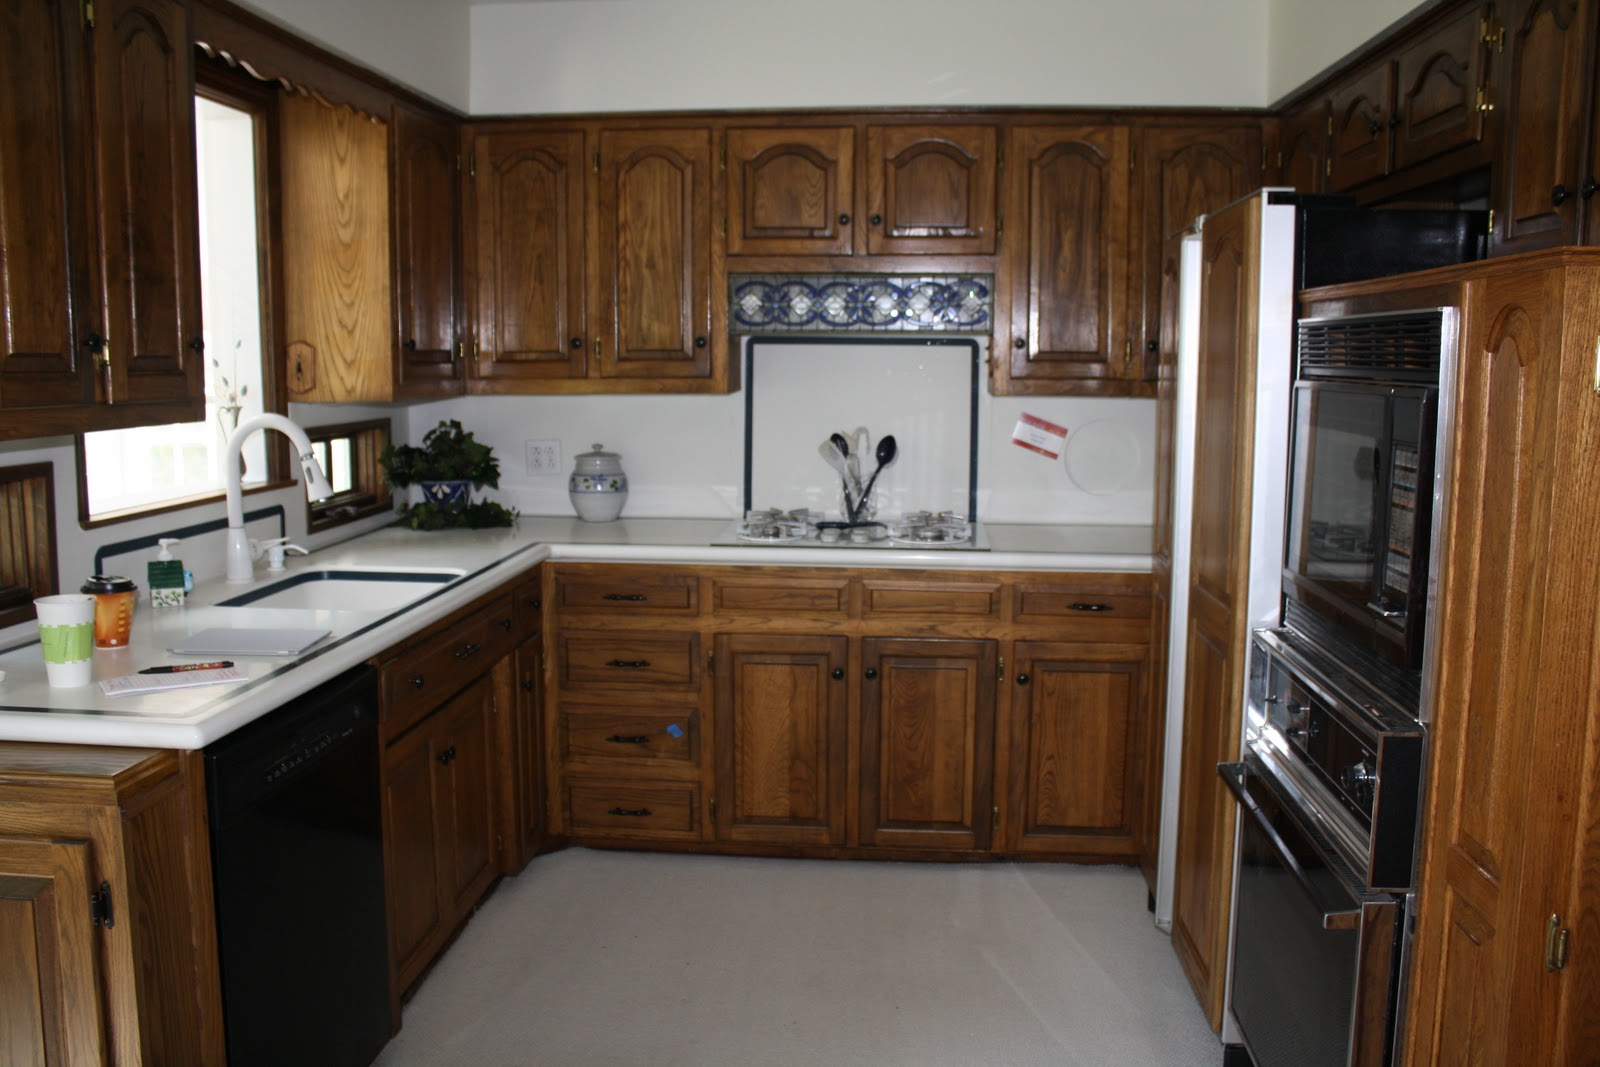 refinishing white kitchen cabinets refinishing kitchen cabinets white 4679